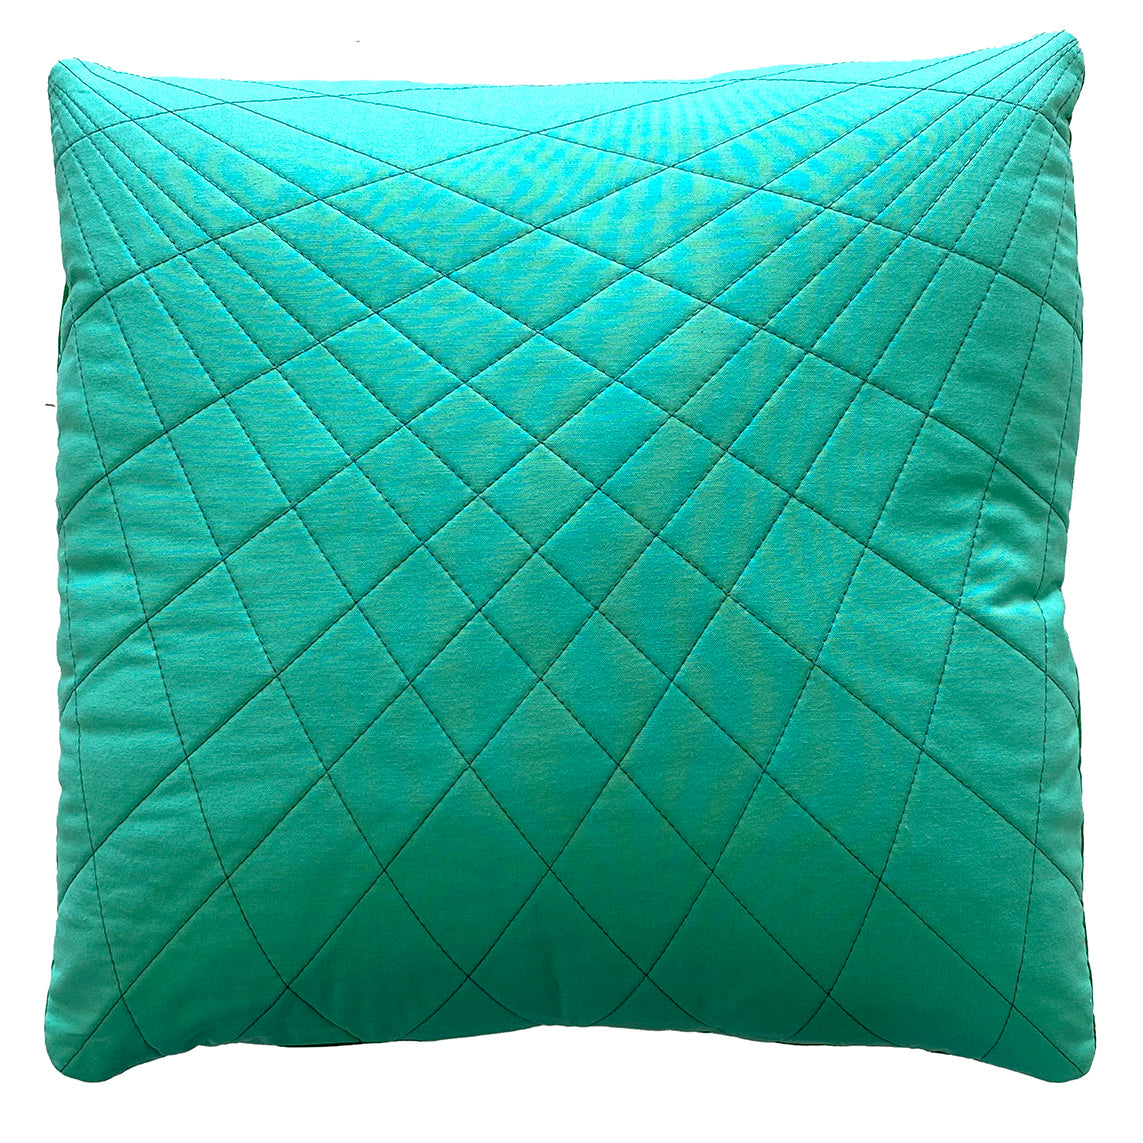 Quilted pillow cover - Sewfinity